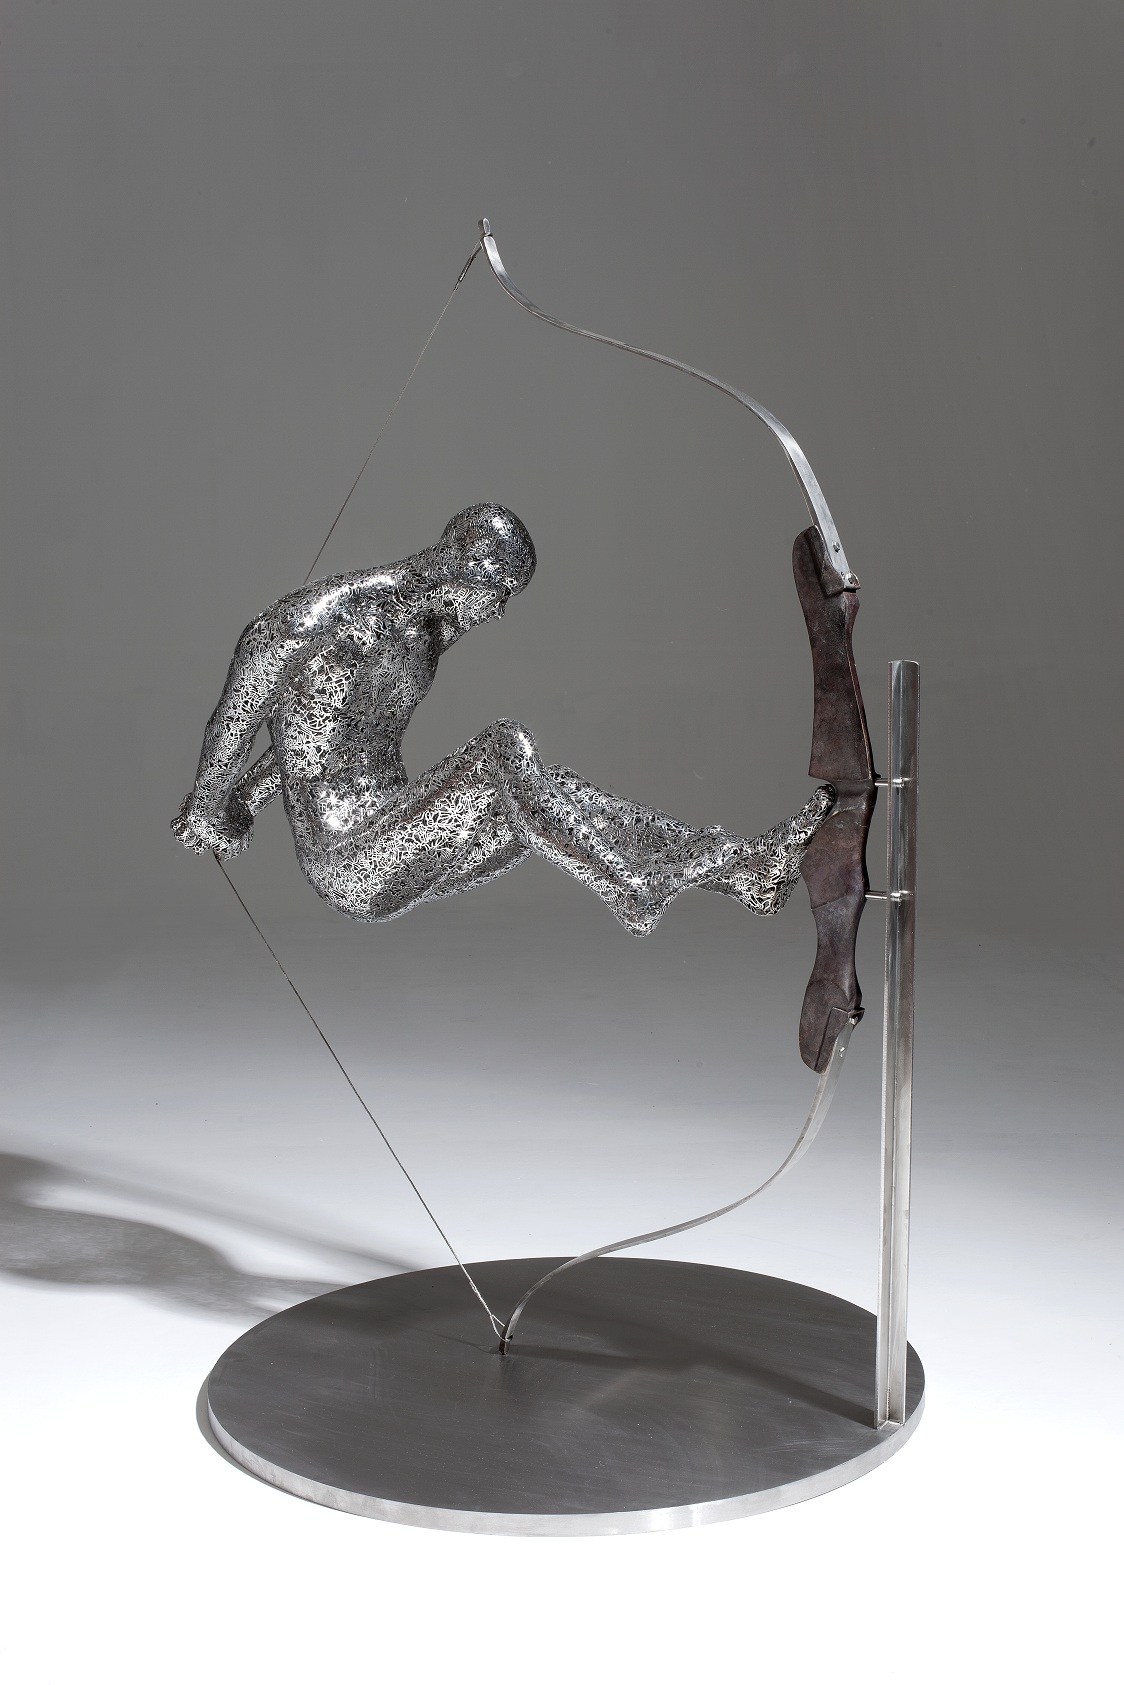 Zheng Lu 郑路, Bow Without an Arrow No.1 张弓无箭 No.1, 2011, Stainless steel and bronze 不锈钢、铜, 133 x 50 x 93 cm